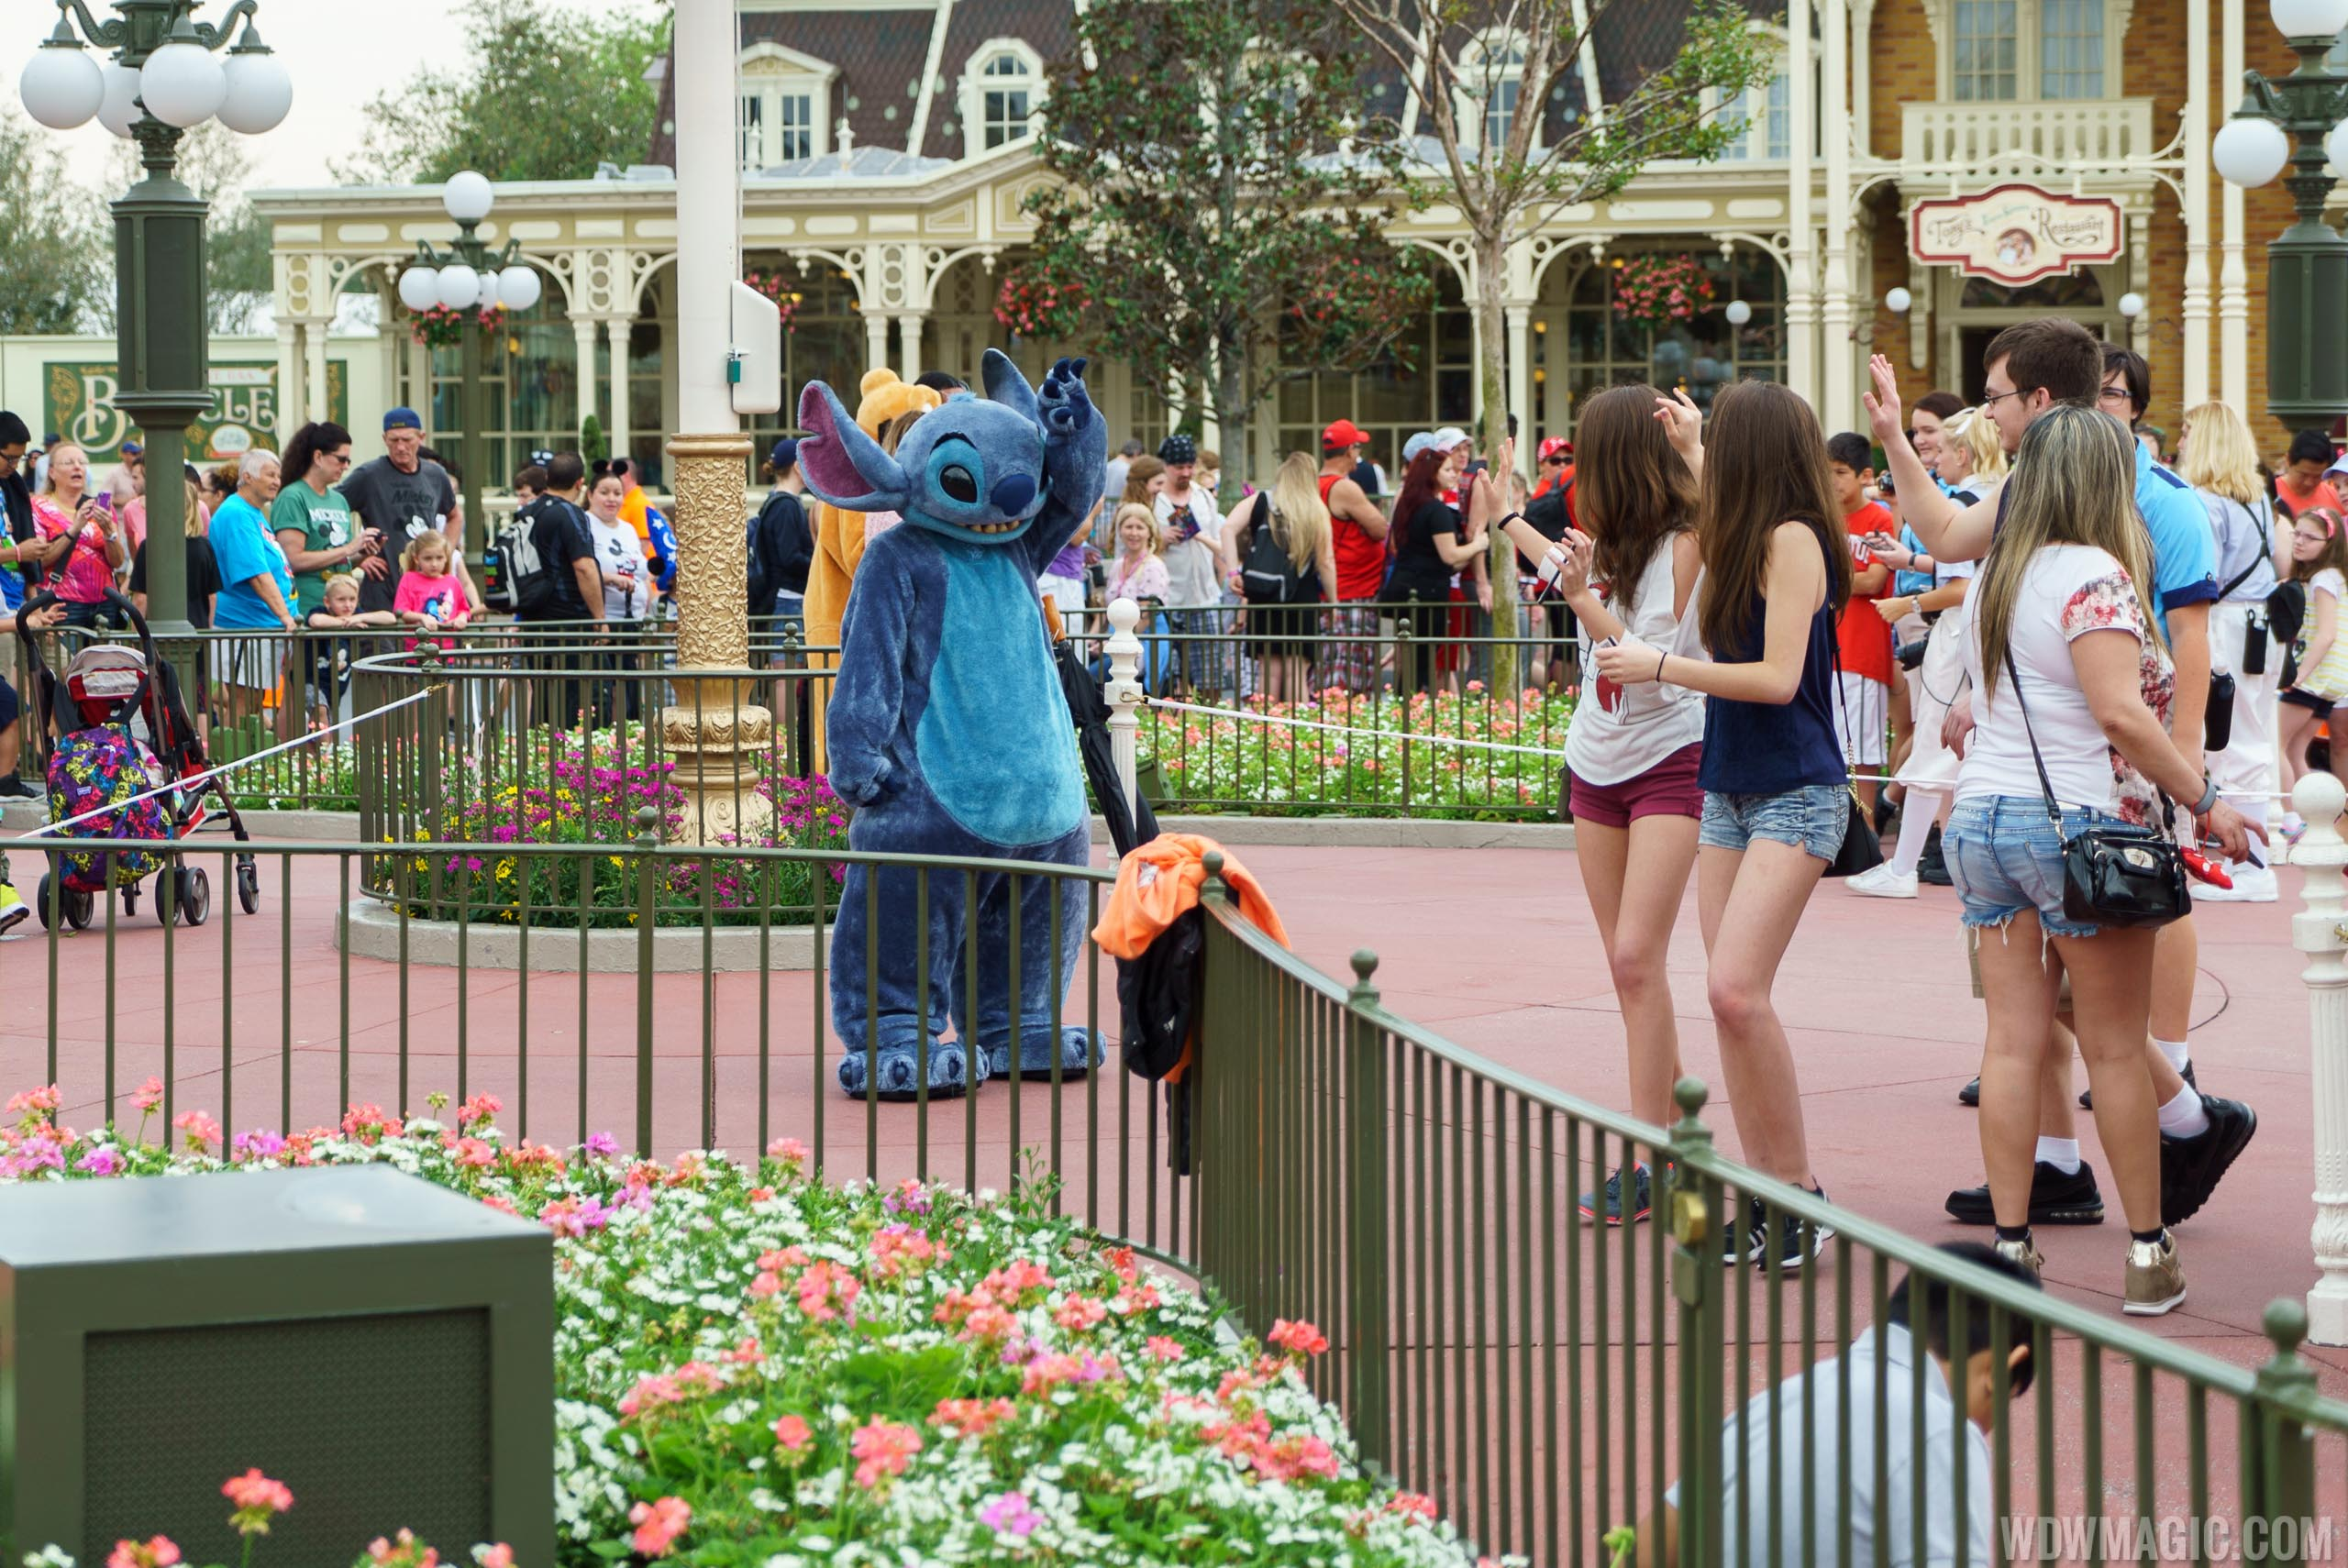 Character meet and greets at the magic kingdom stitch meet and greet in town square at the magic kingdom m4hsunfo